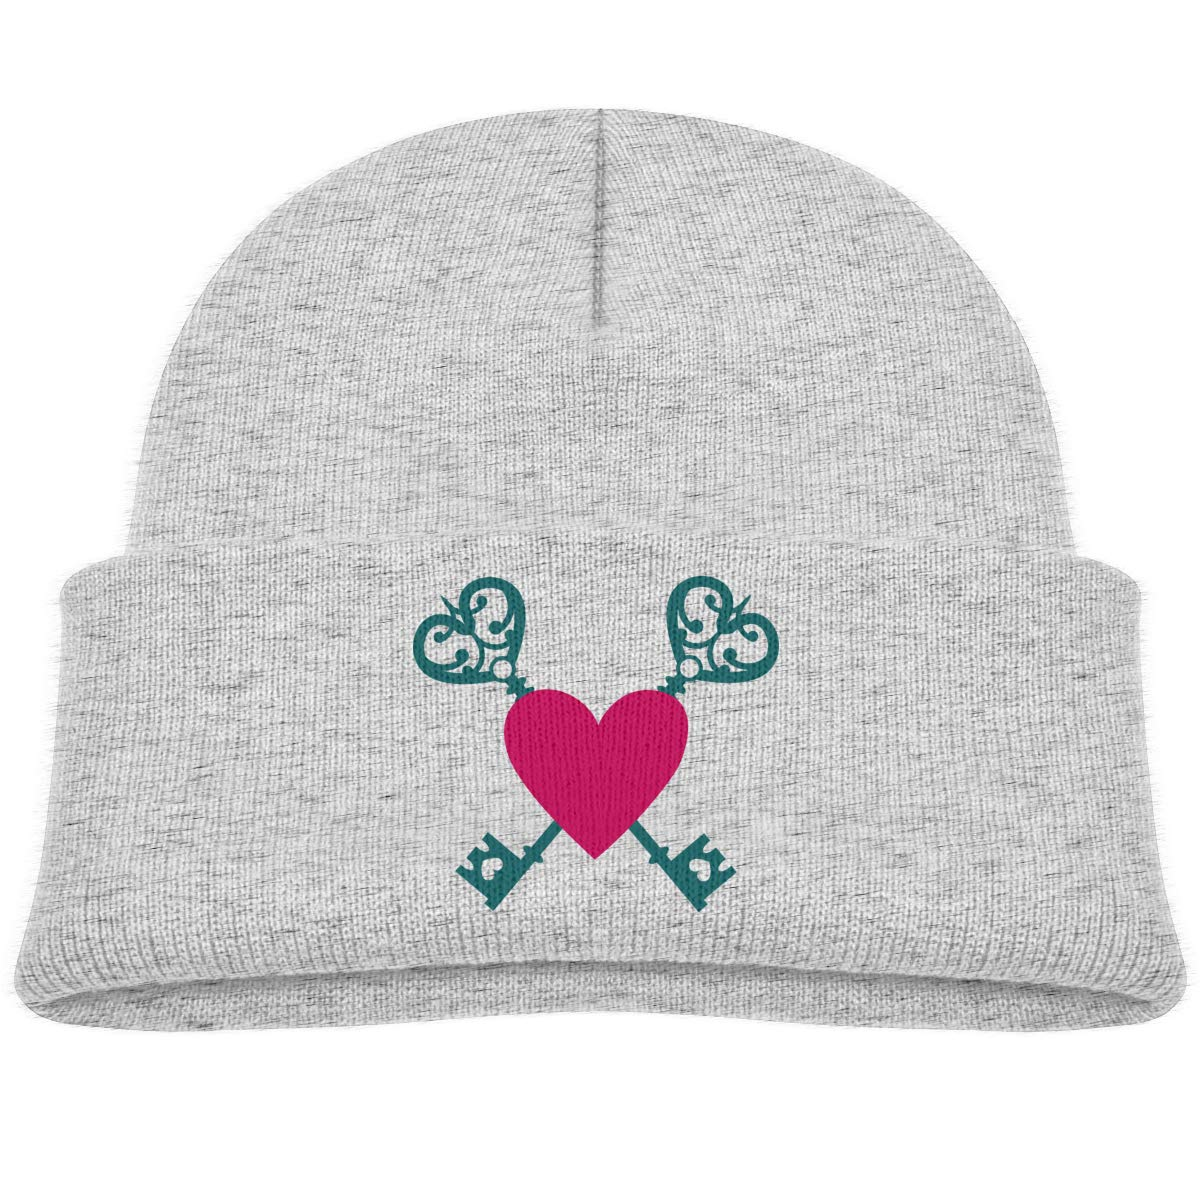 Crossed Keys with Heart Beanie Hat Toddler